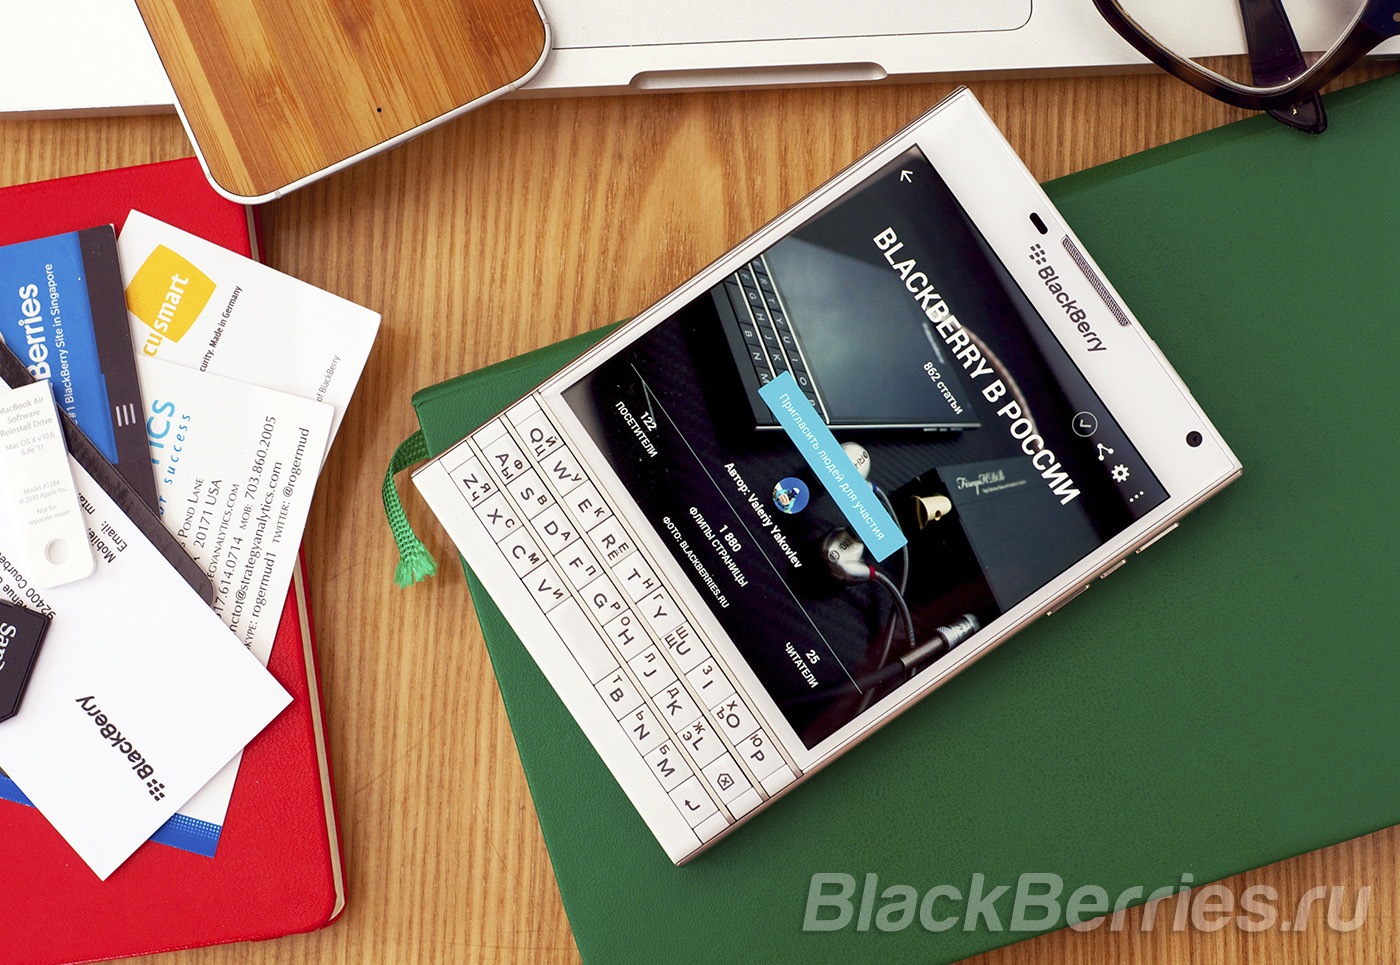 BlackBerry-Passport-31-05-20